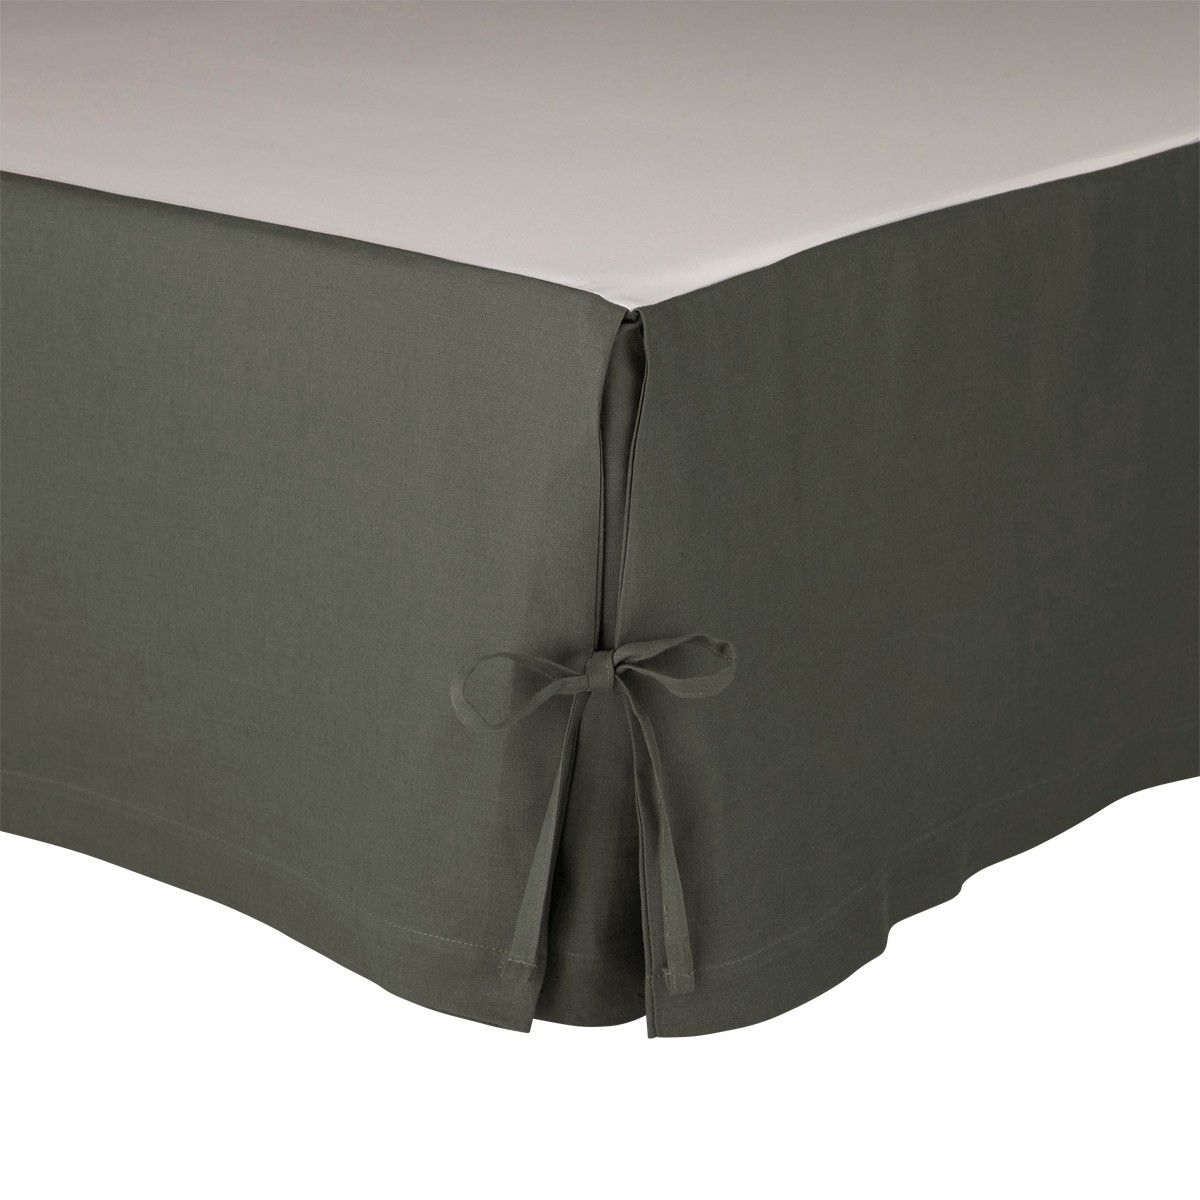 Cache sommier Lin Anthracite 140 x 190 cm (photo)